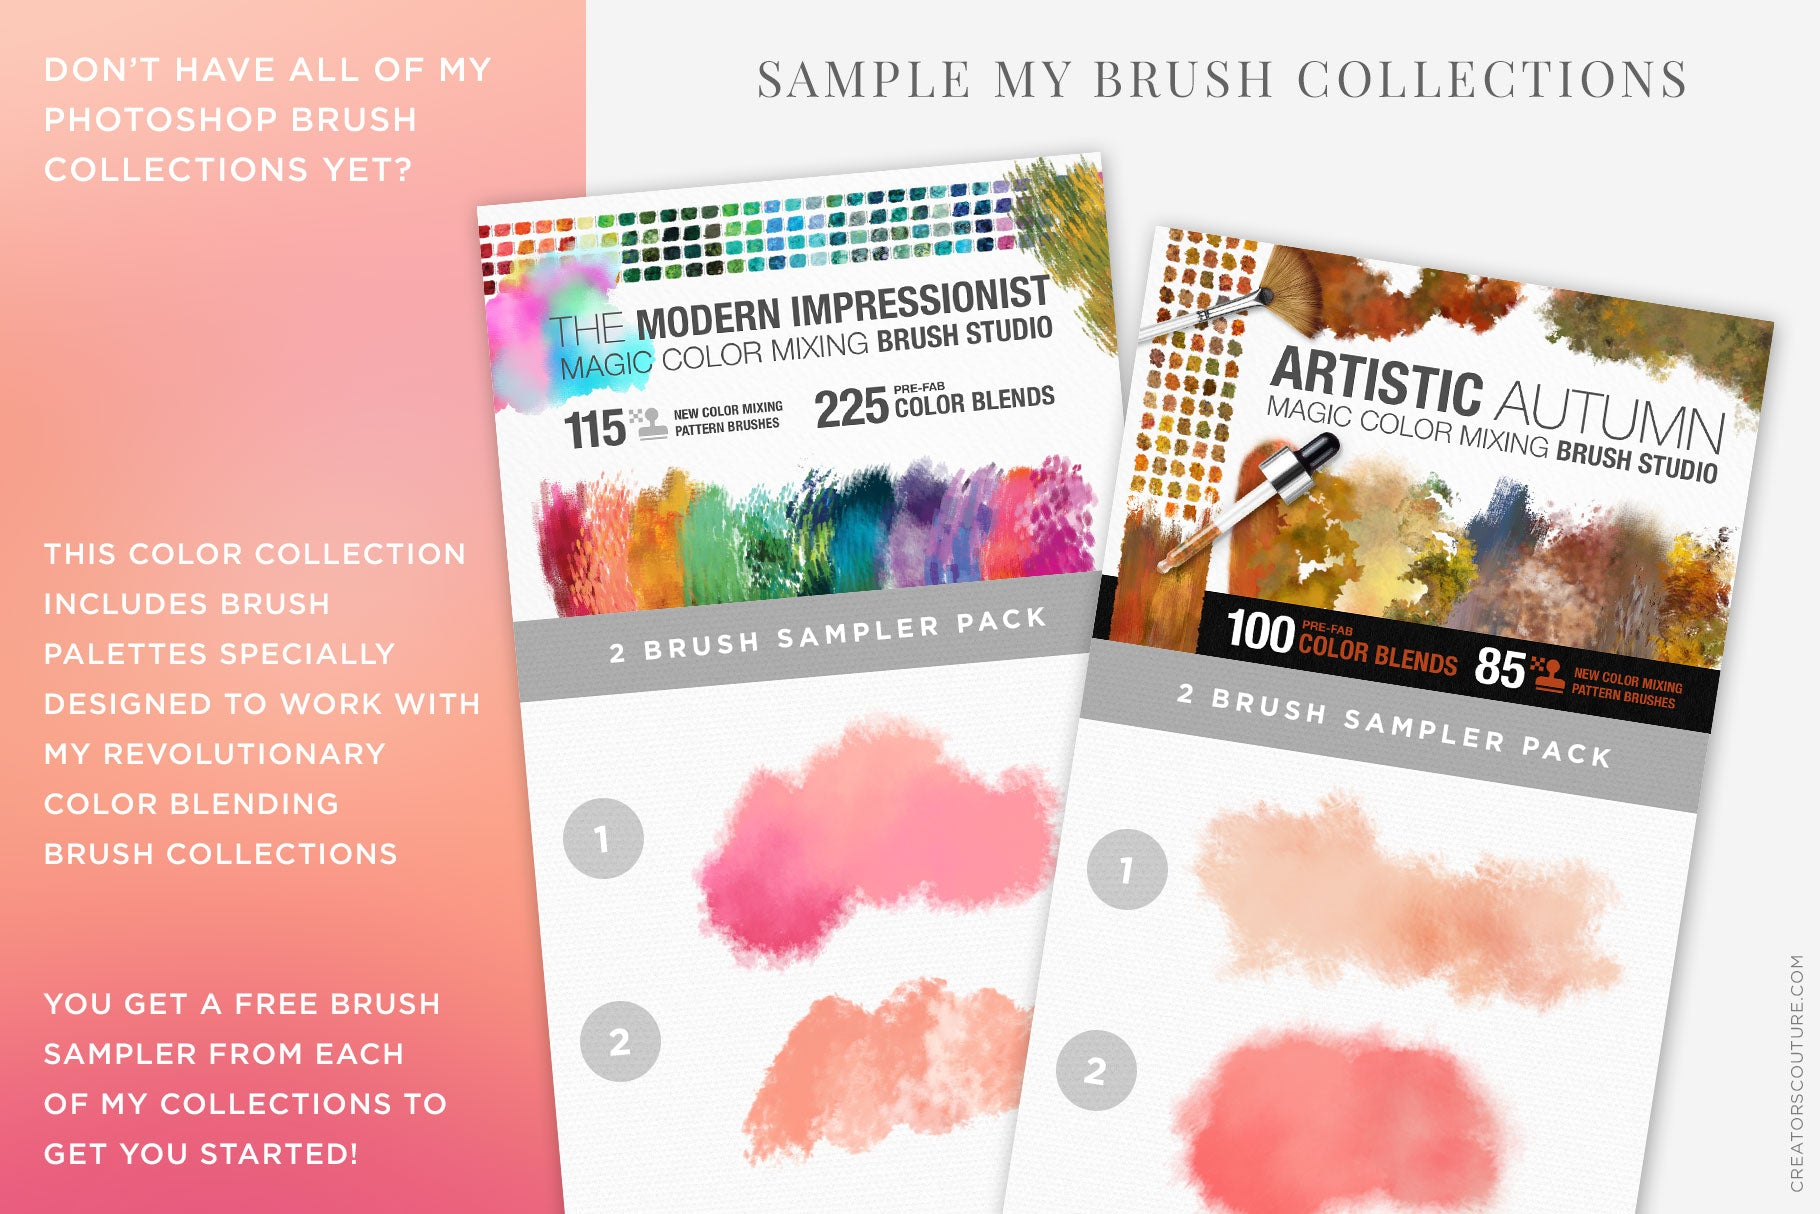 Rosé wine themed Color Palette & Color-Blending Brush Collection, brush sampler